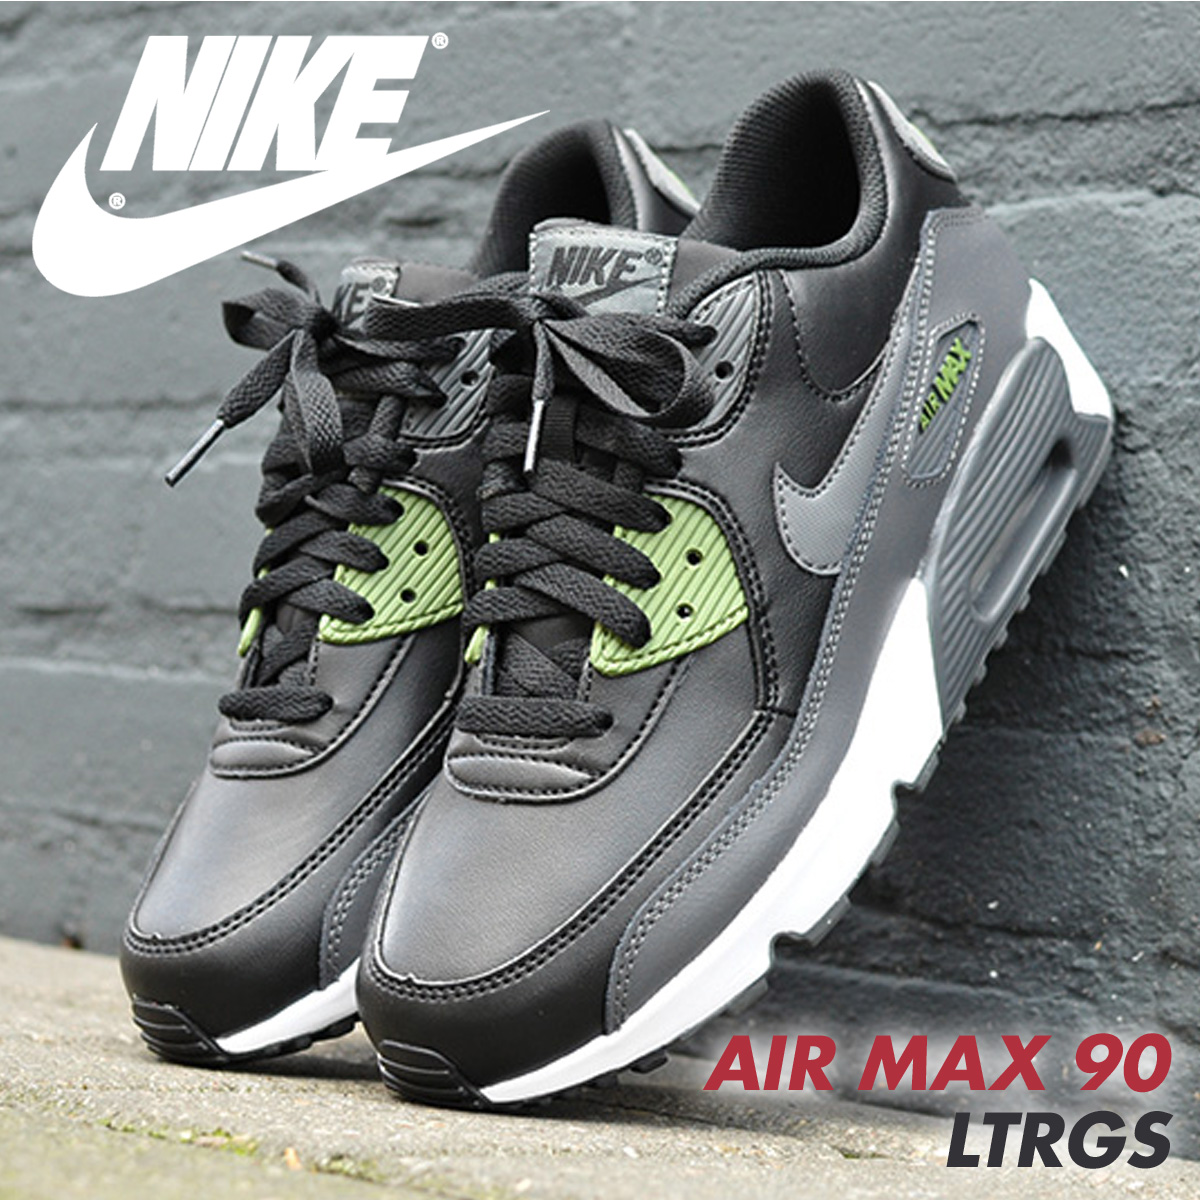 new styles e302e 8f427 Nike NIKE Air Max 90 Lady s sneakers AIR MAX 90 LTR GS 833,412-008  833,412-009 shoes  5 11 Shinnyu load